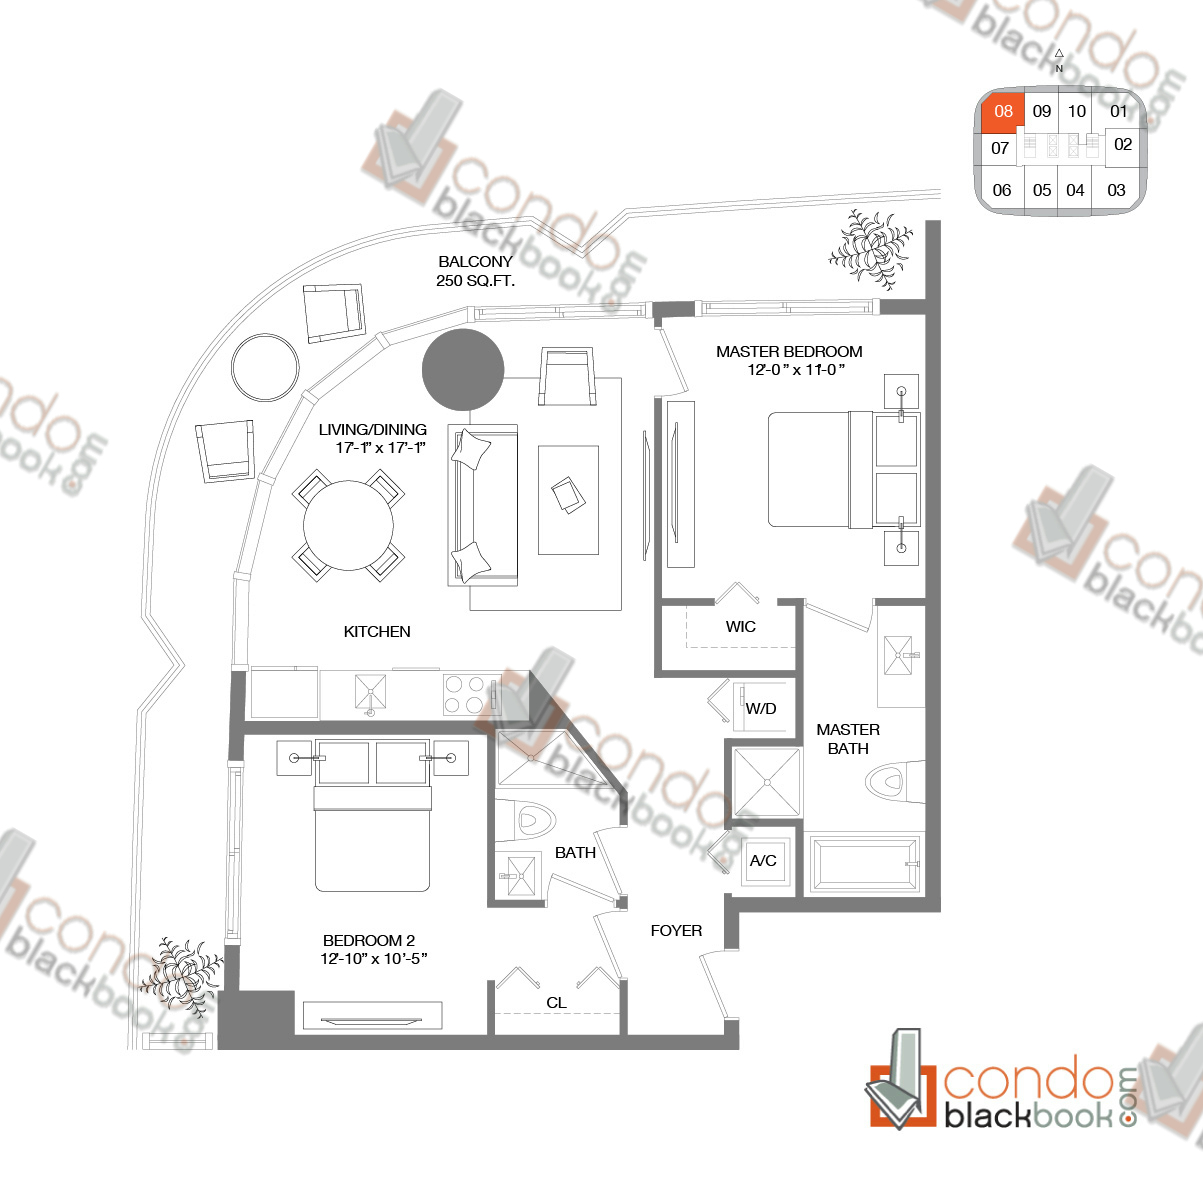 Floor plan for Brickell Heights West Tower Brickell Miami, model RESIDENCE 08, line 08, 2/2 bedrooms, 900 sq ft